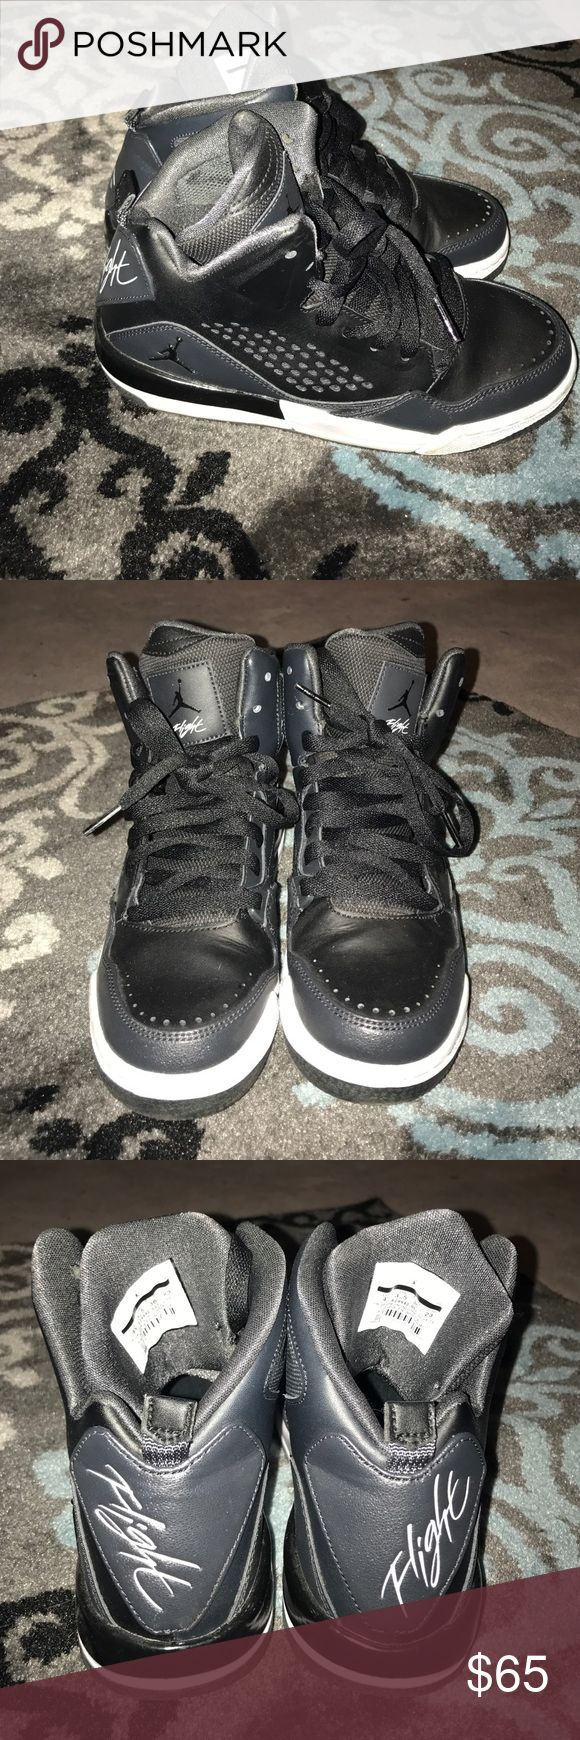 Jordan Flights Black Jordans. Size 4Y. Would fit a woman's 5 1/2-6 shoe. This are like brand new. Still tight and not even broken in yet. Probably worse these 5 times or less. Jordan Shoes Sneakers